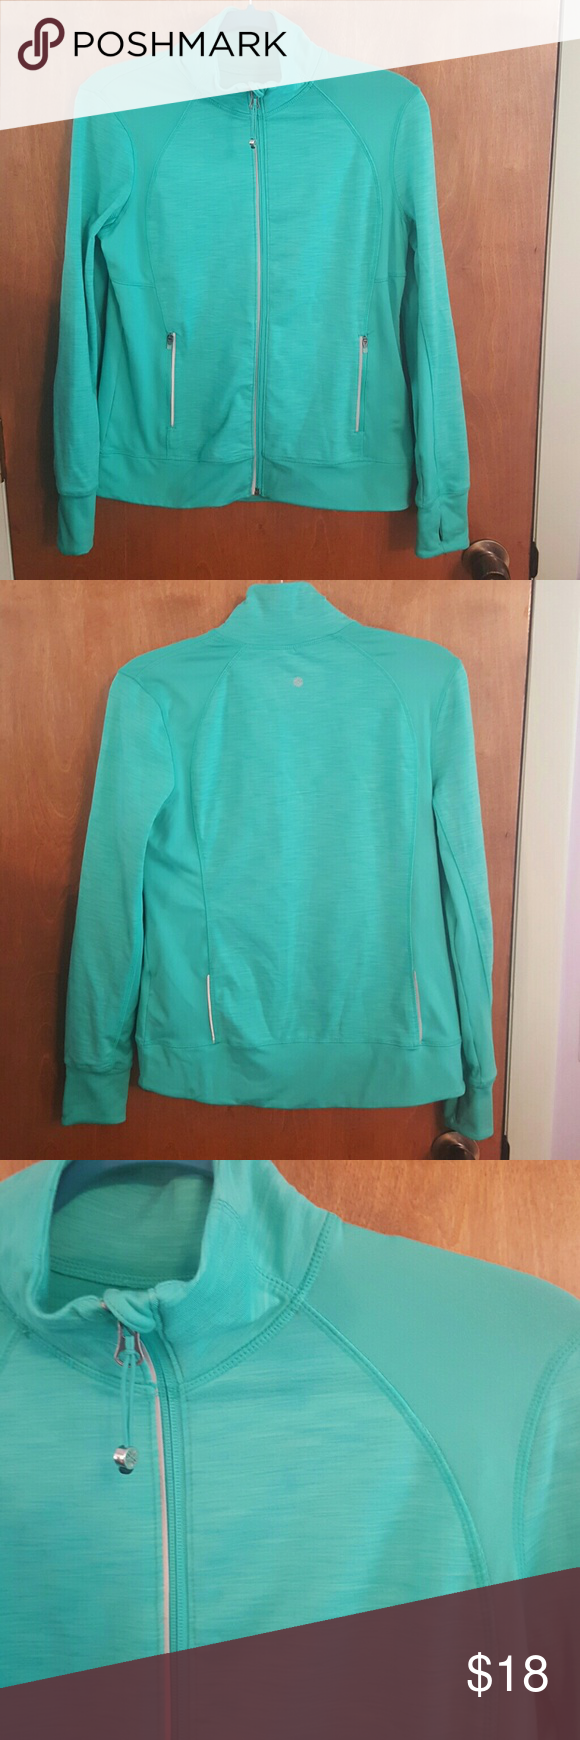 Athletic Zip up Turquoise athletic Zip up by Tangerine. Worn once washed once in cold and hung dry. No flaws just trying to downsize my closet. Tangerine  Tops Sweatshirts & Hoodies